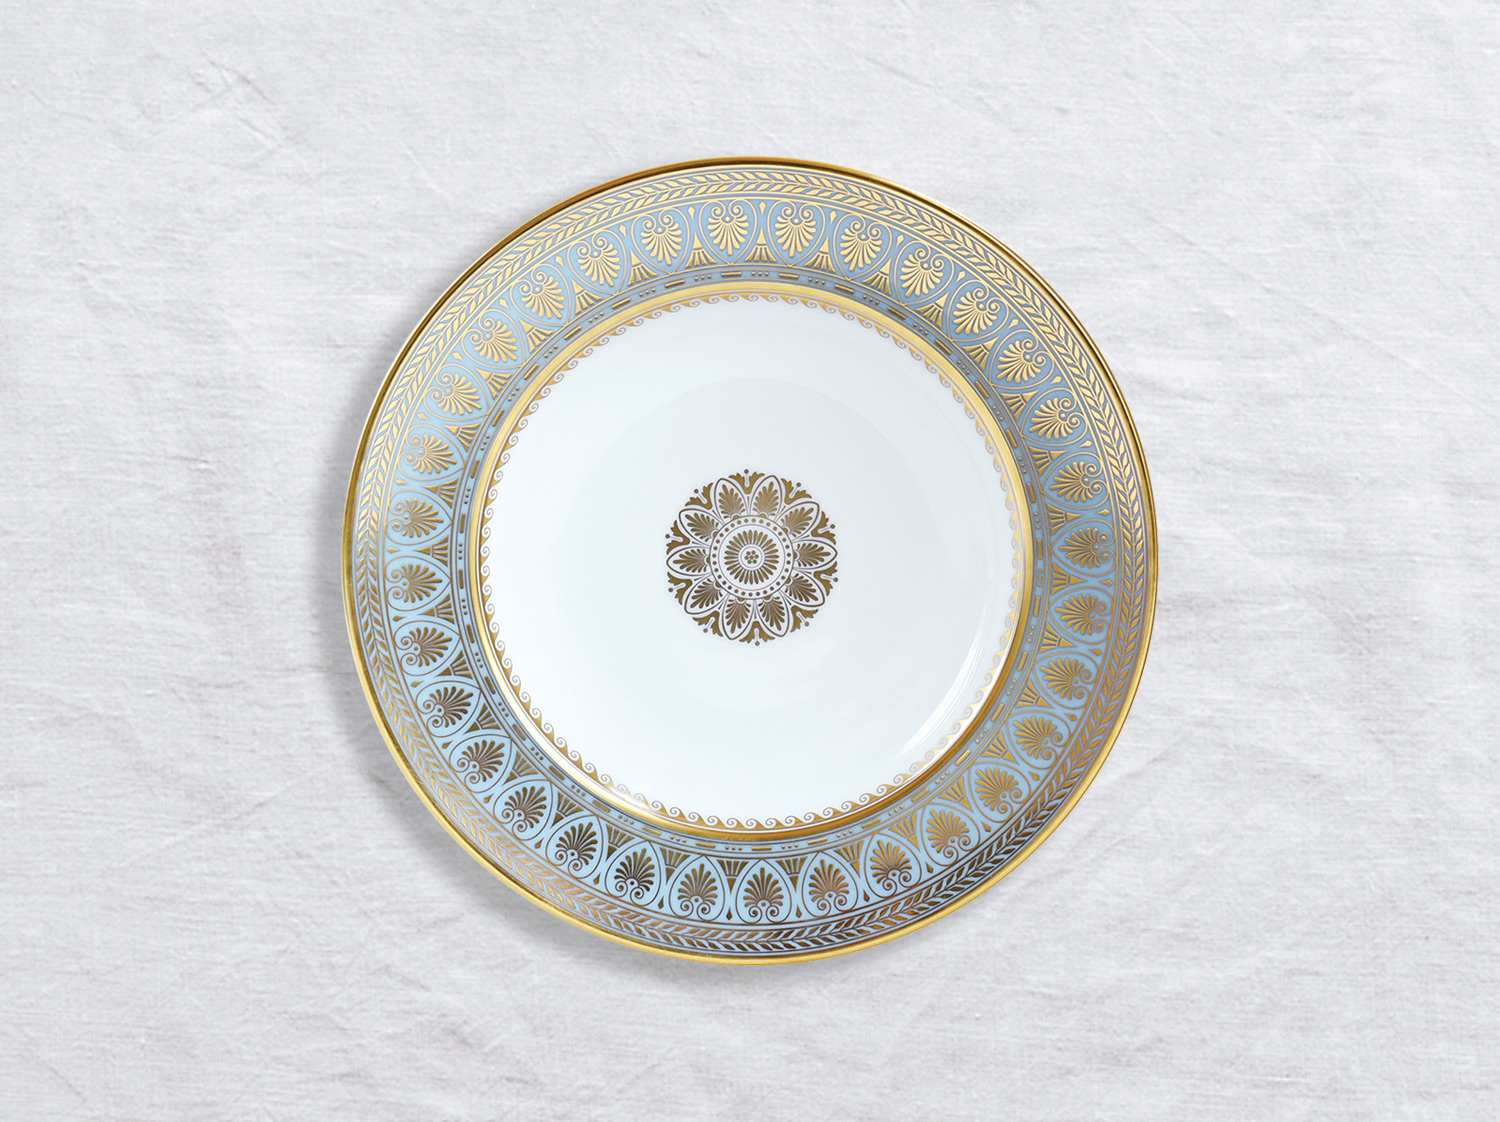 Assiette creuse à aile 22,5 cm en porcelaine de la collection Elysee Bernardaud